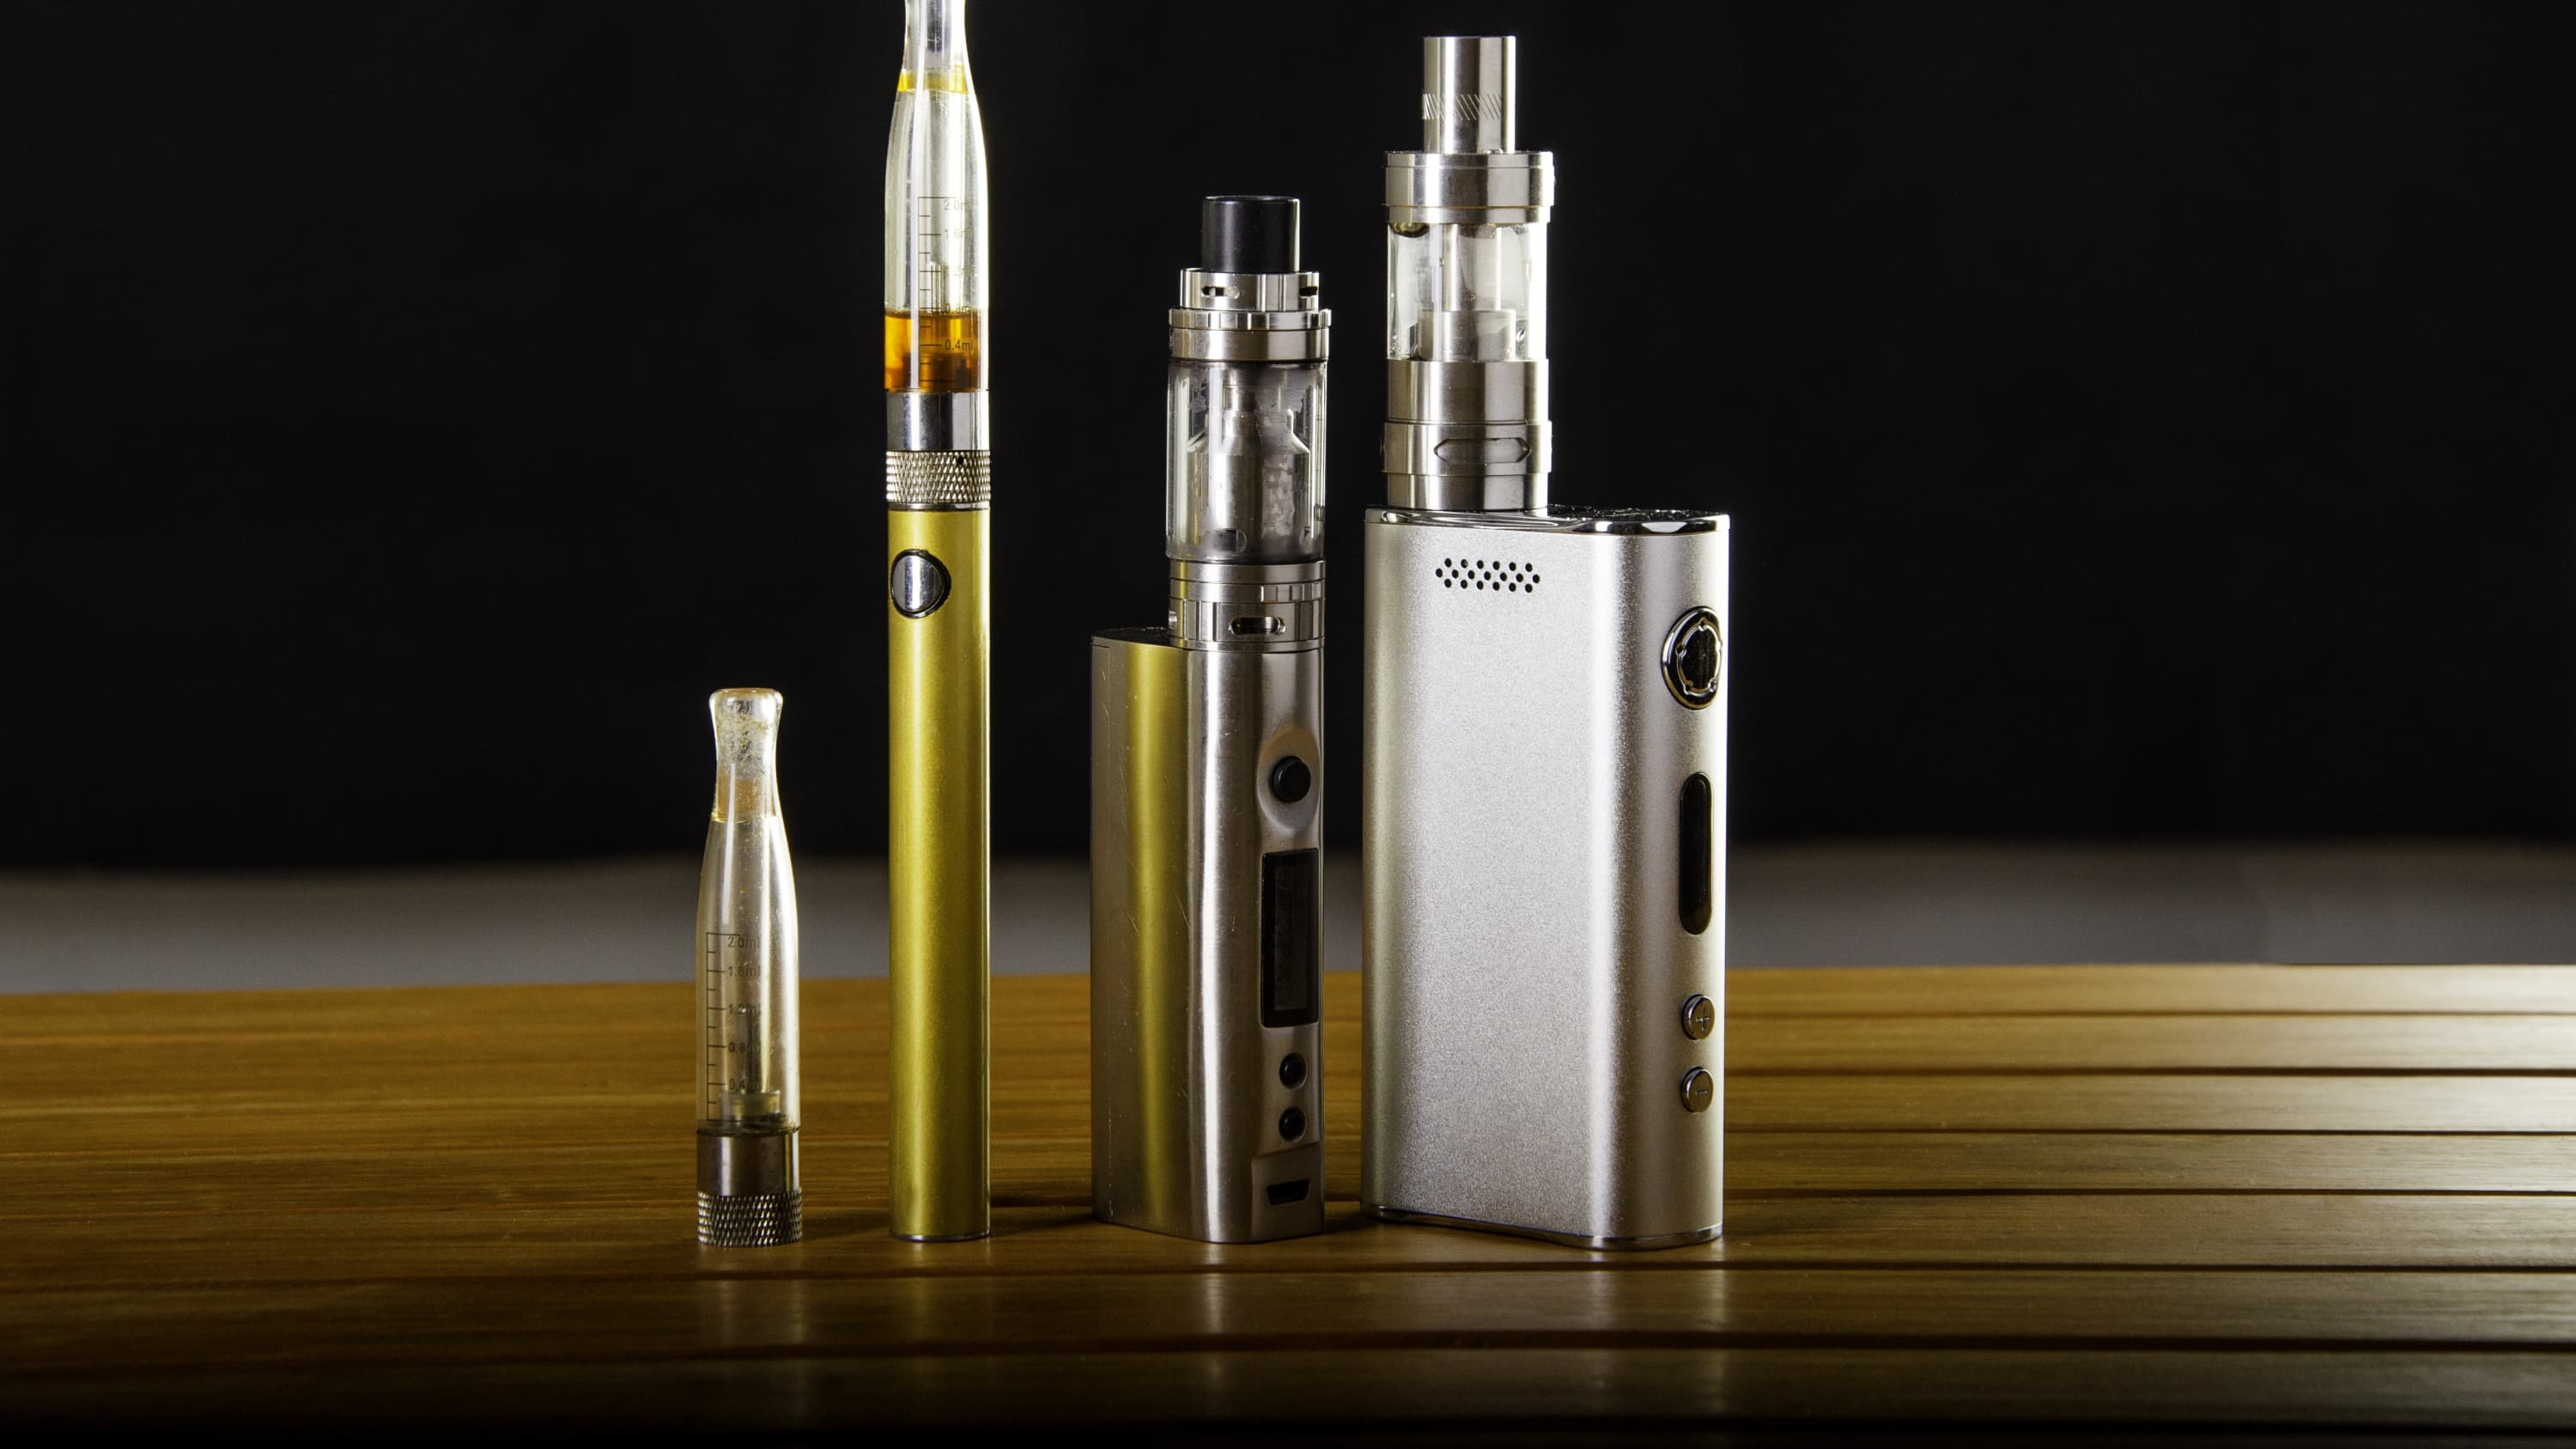 vaping devices, which may lead to EVALI